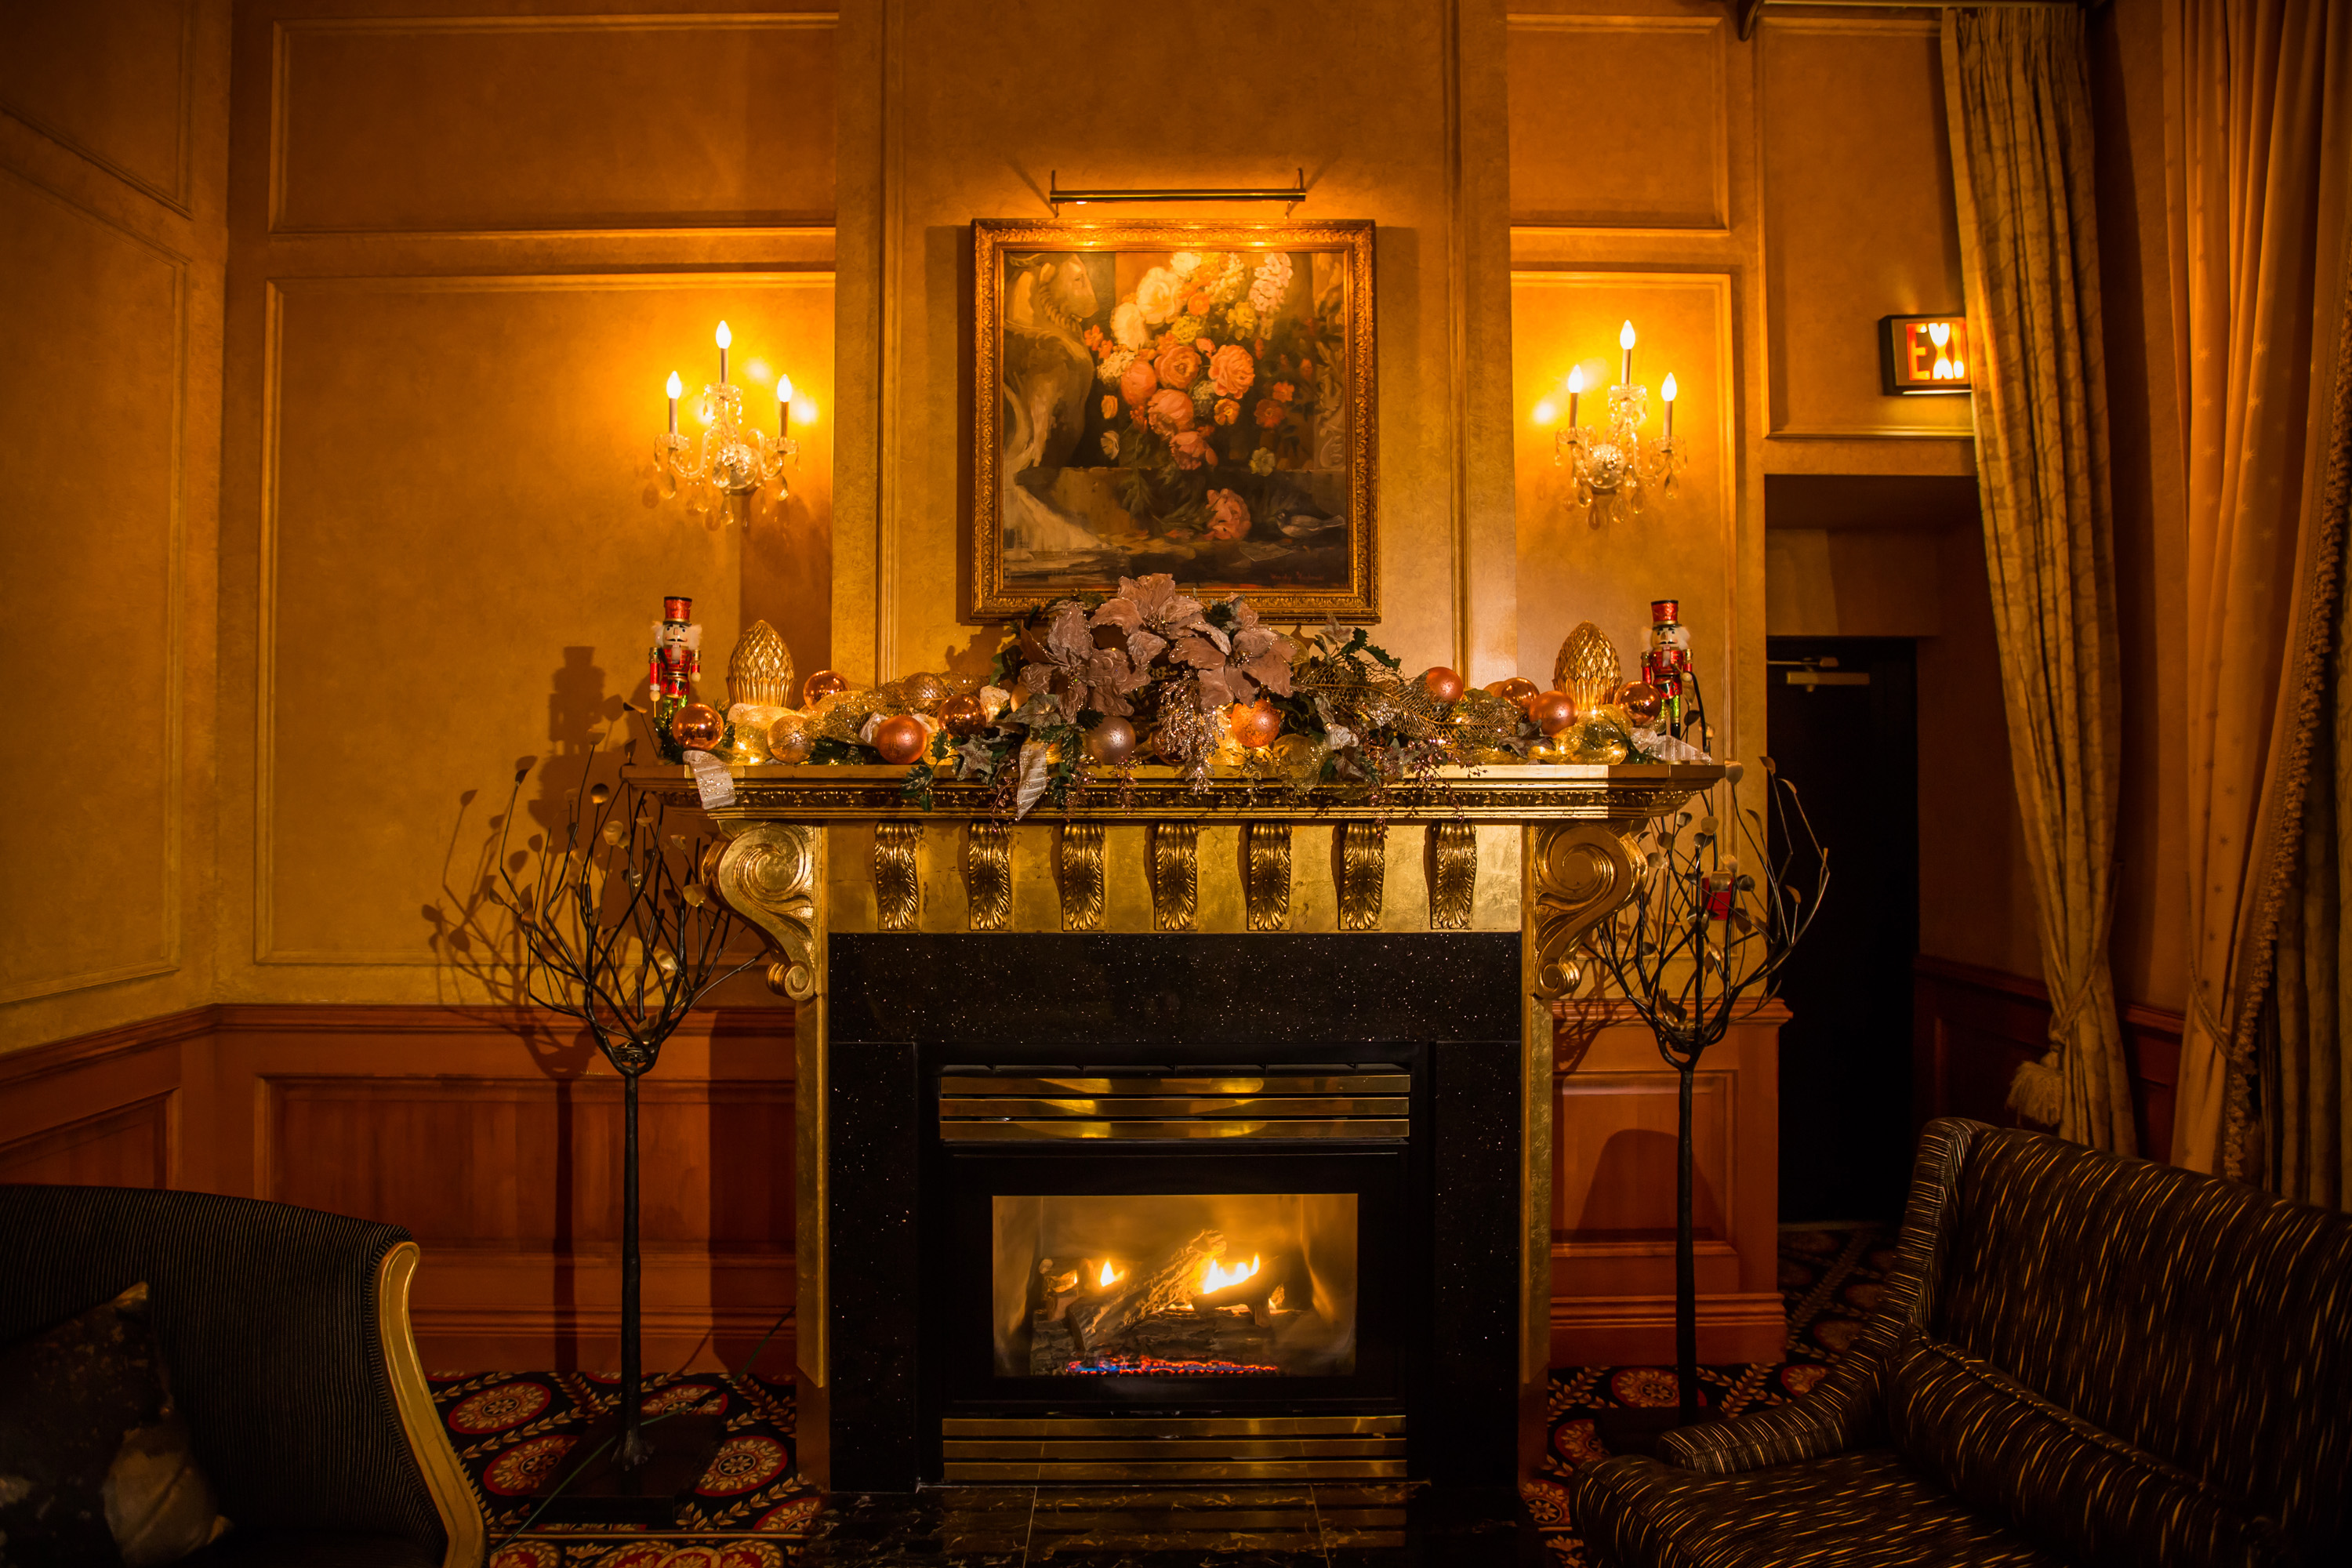 An Old World Charm Inspired Holiday Designs- Hotel Le Soleil Vancouver